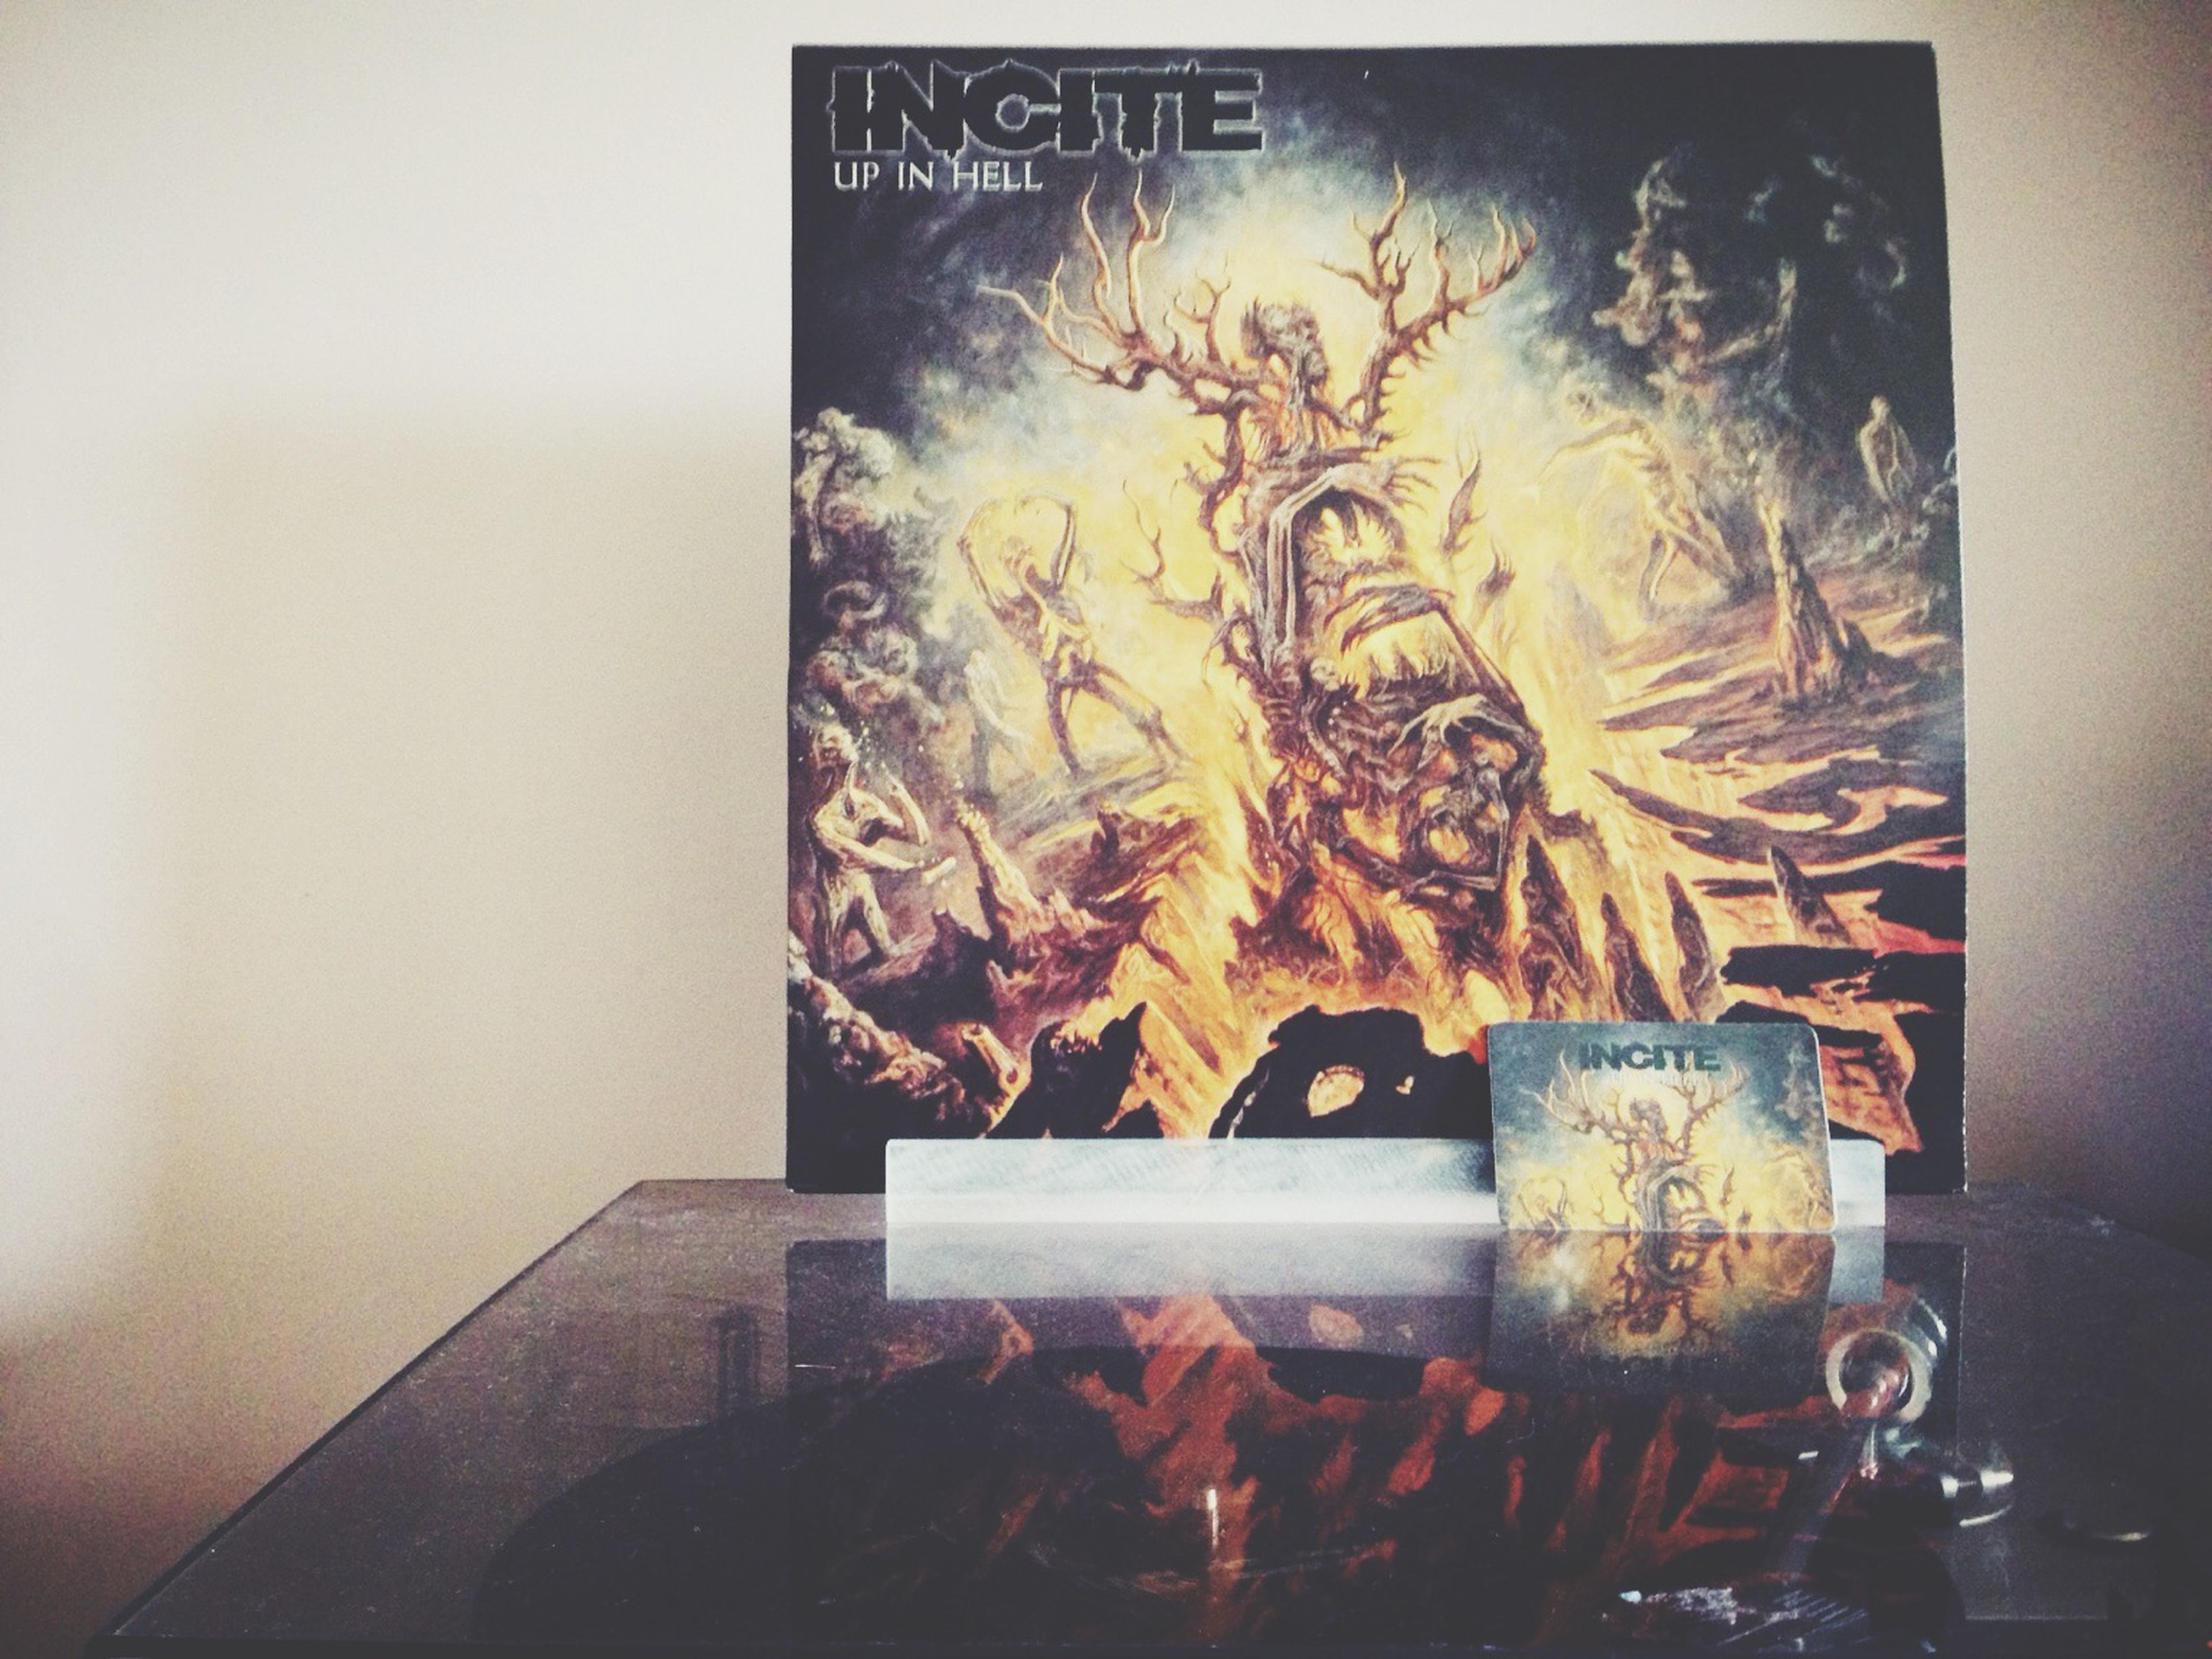 After a long wait my Incite record 'Up In Hell' finally arrived today. Playing it now. Freakin eargasm! Listening To Music Taking Photos Music Incite Vinyl Metalhead Metal